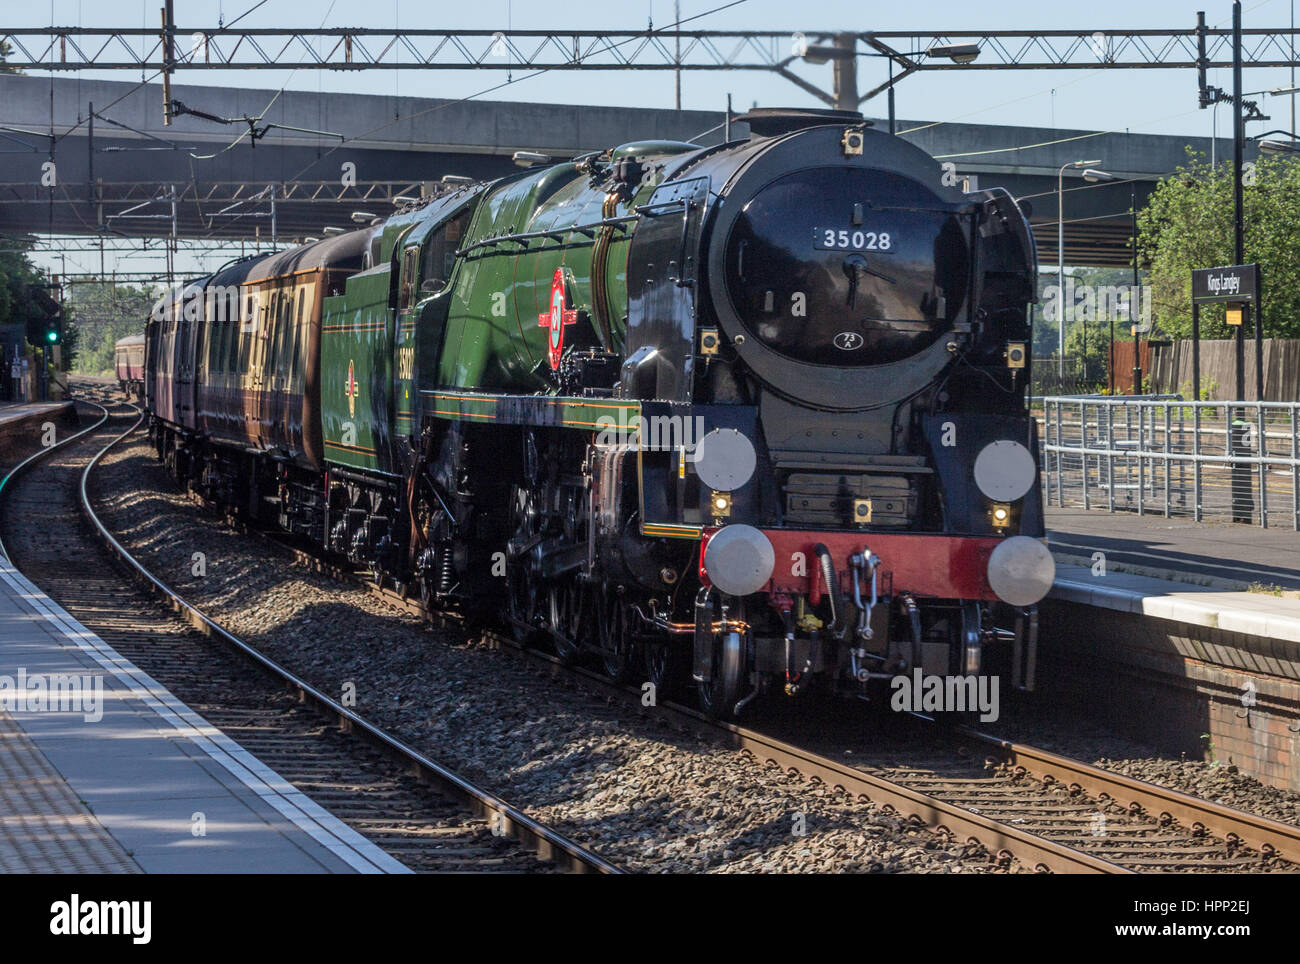 35028 Clan Line hauling an enthusiasts special train through Kings Langley Station in Hertfordshire, UK - Stock Image